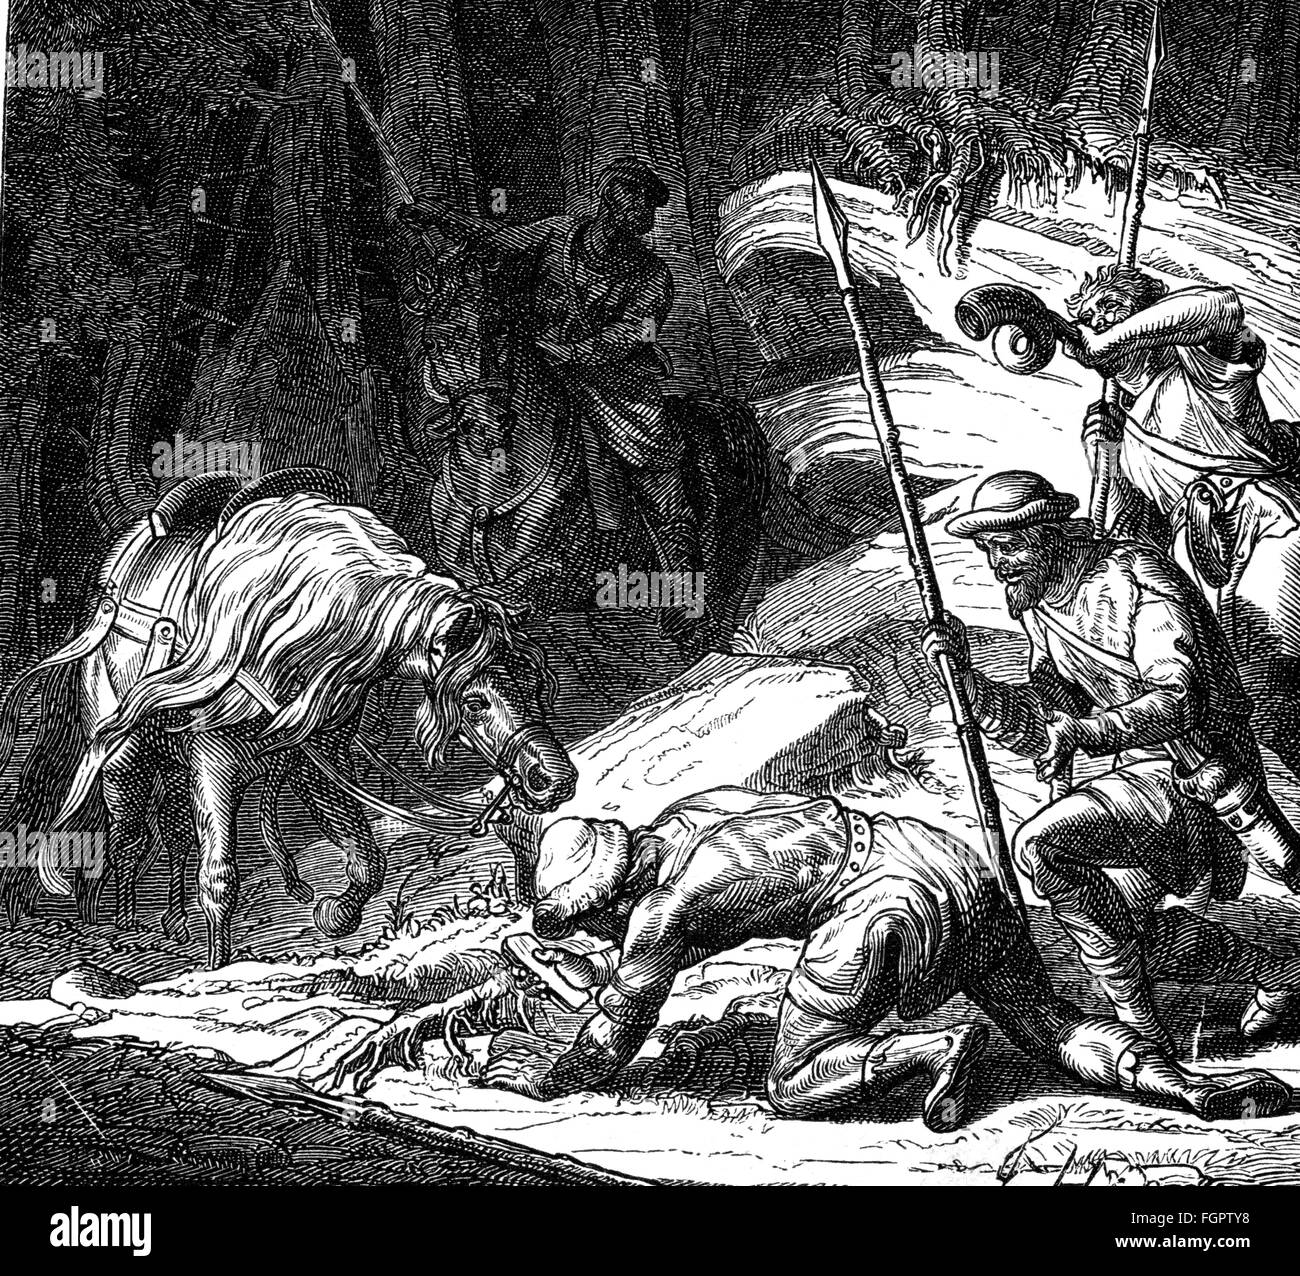 mining, silver, legend of the discovery of silver on the Rammelsberg mountain near Goslar, wood engraving, after - Stock Image